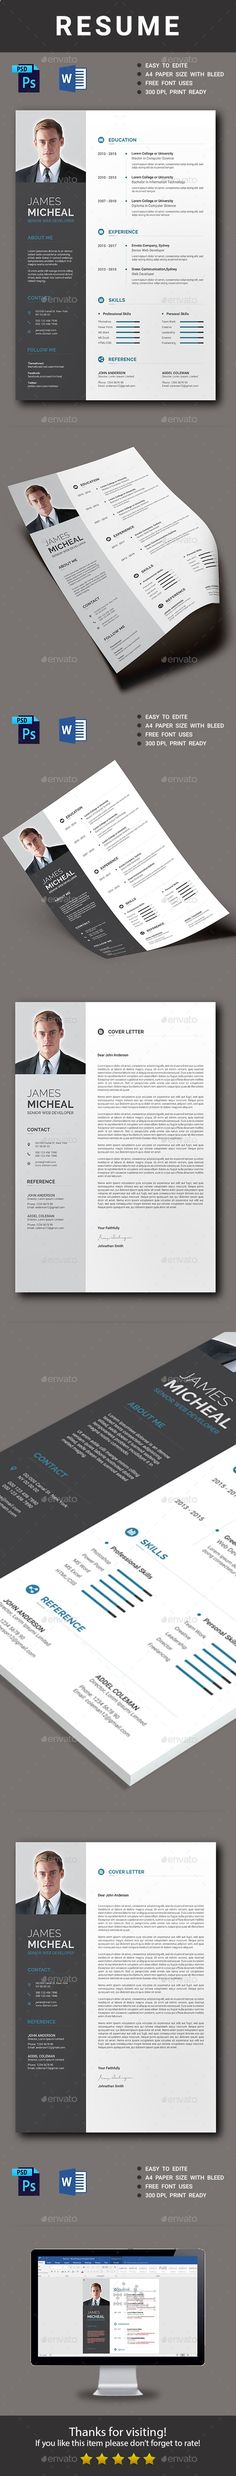 30+ Resume Templates for MAC - Free Word Documents Download - free resume builder and downloader